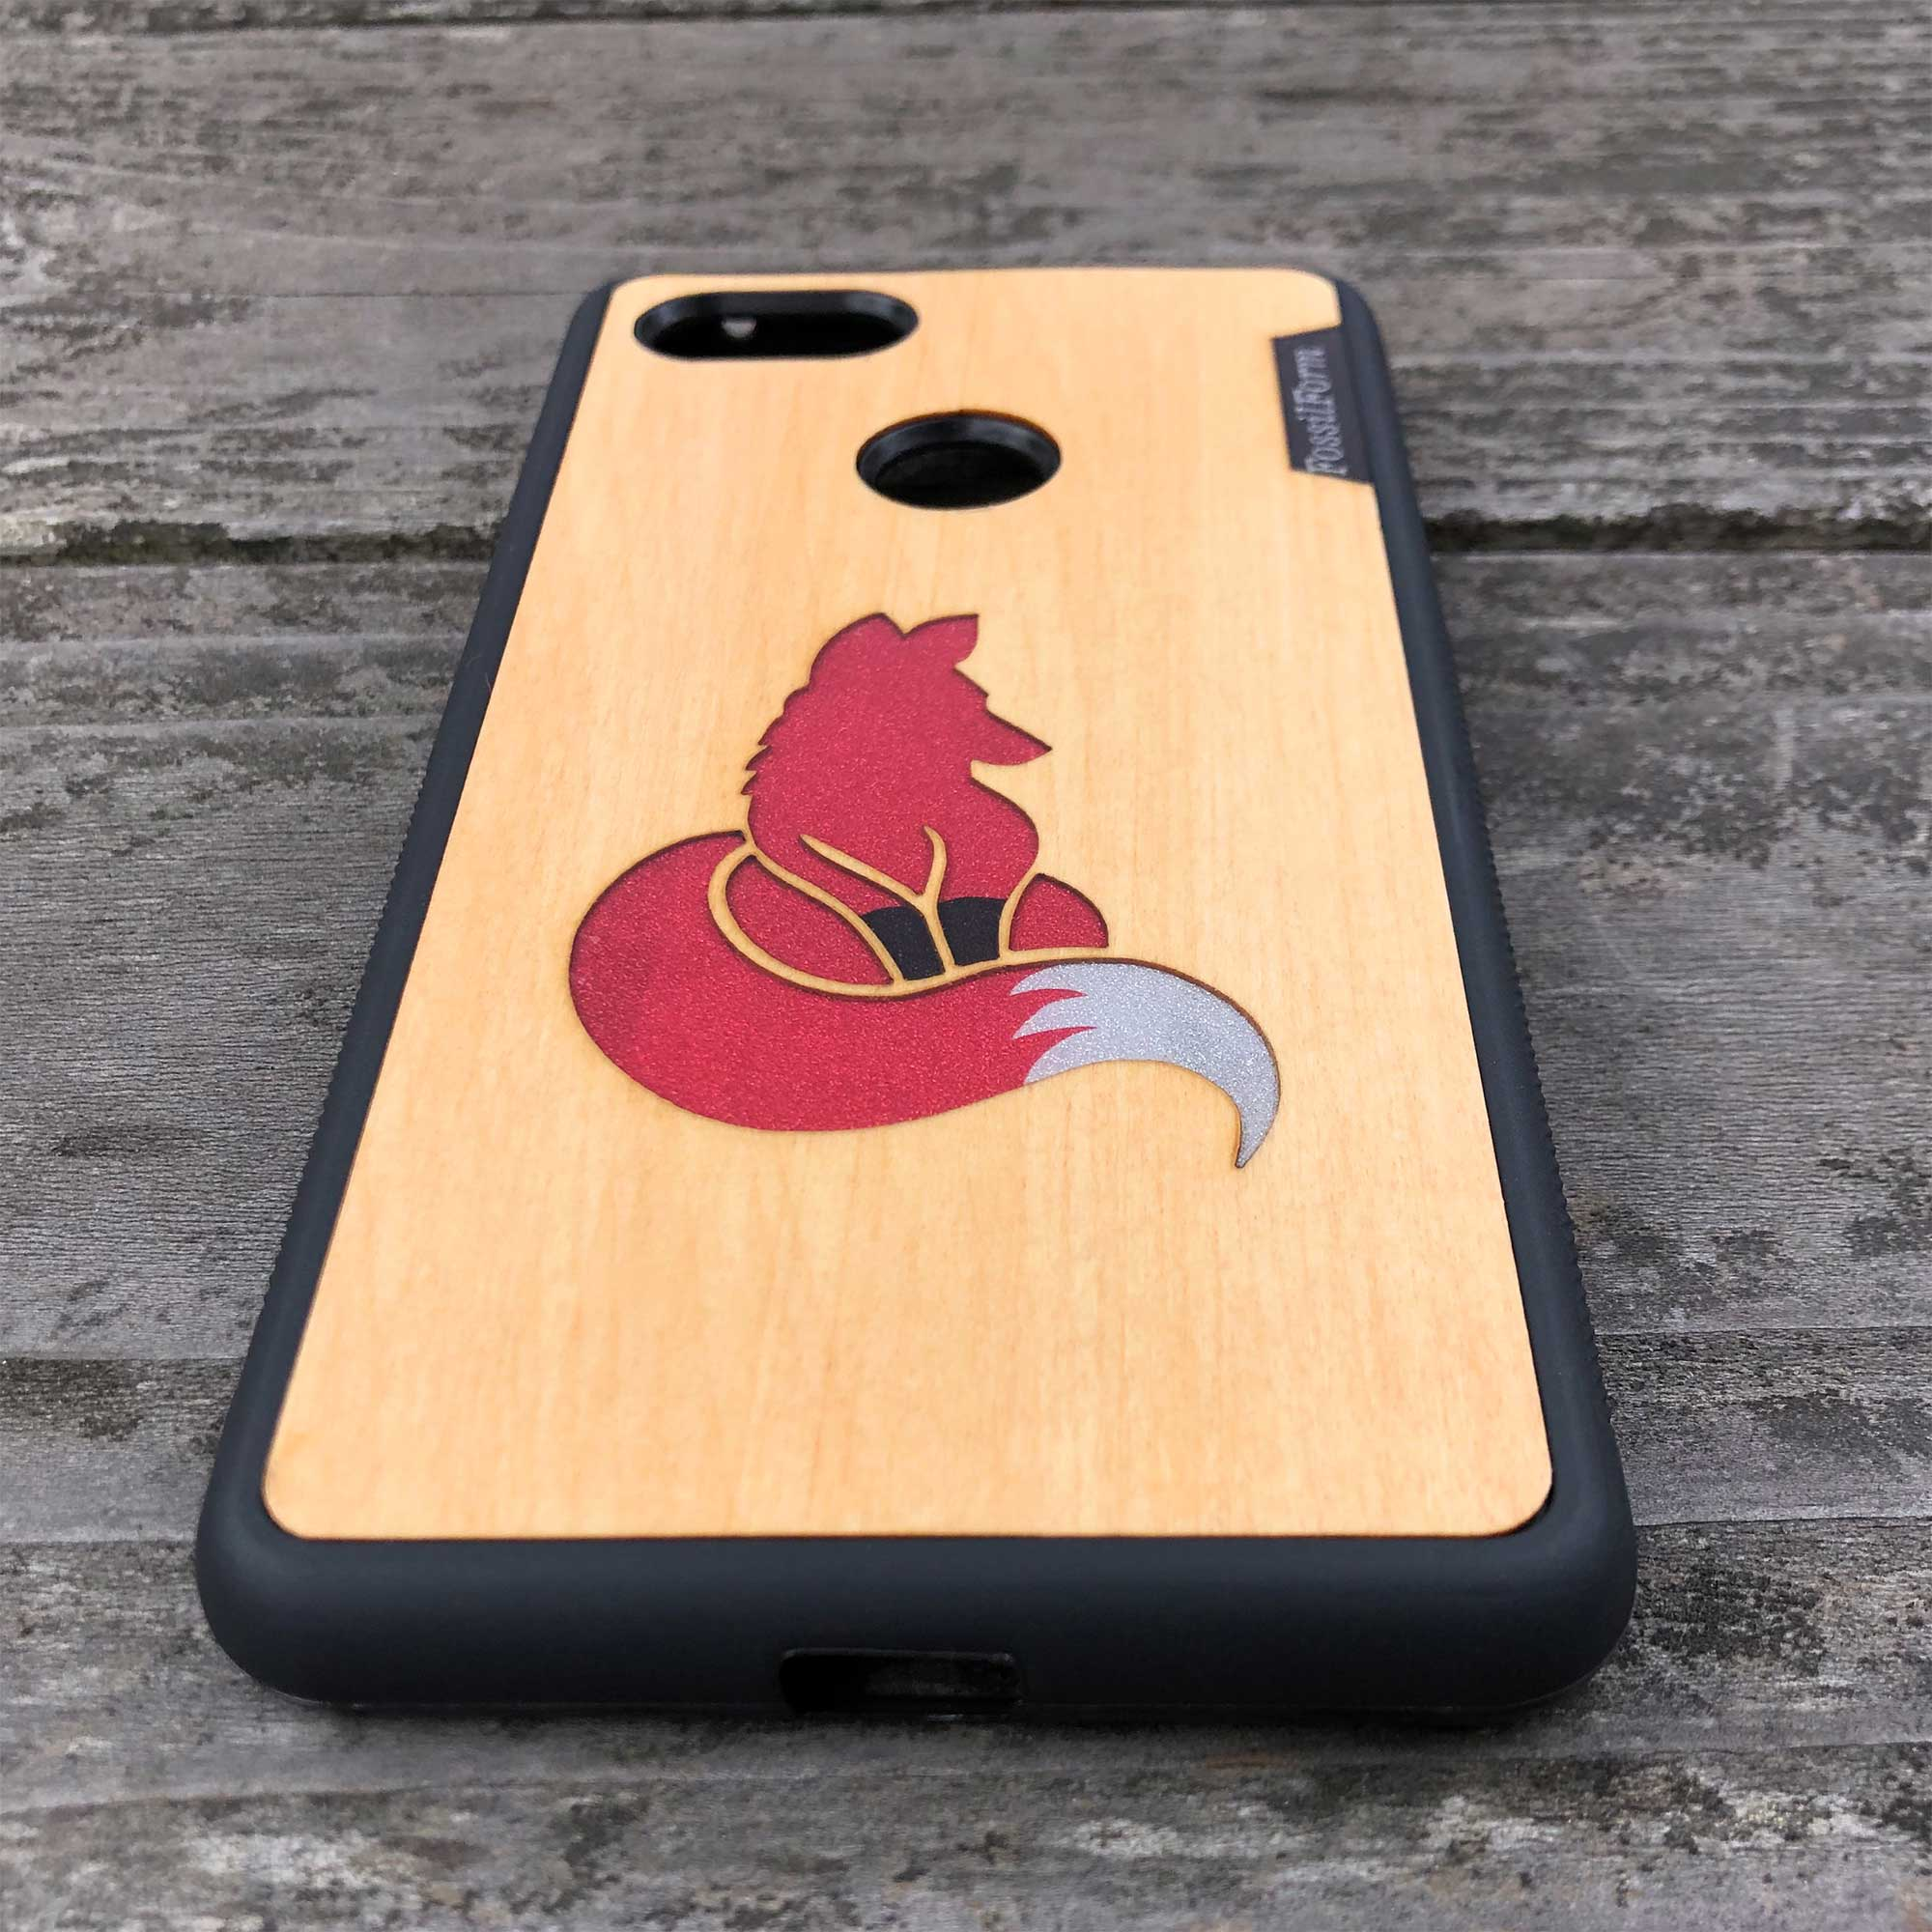 Fox - Wood & Resin Case - Black